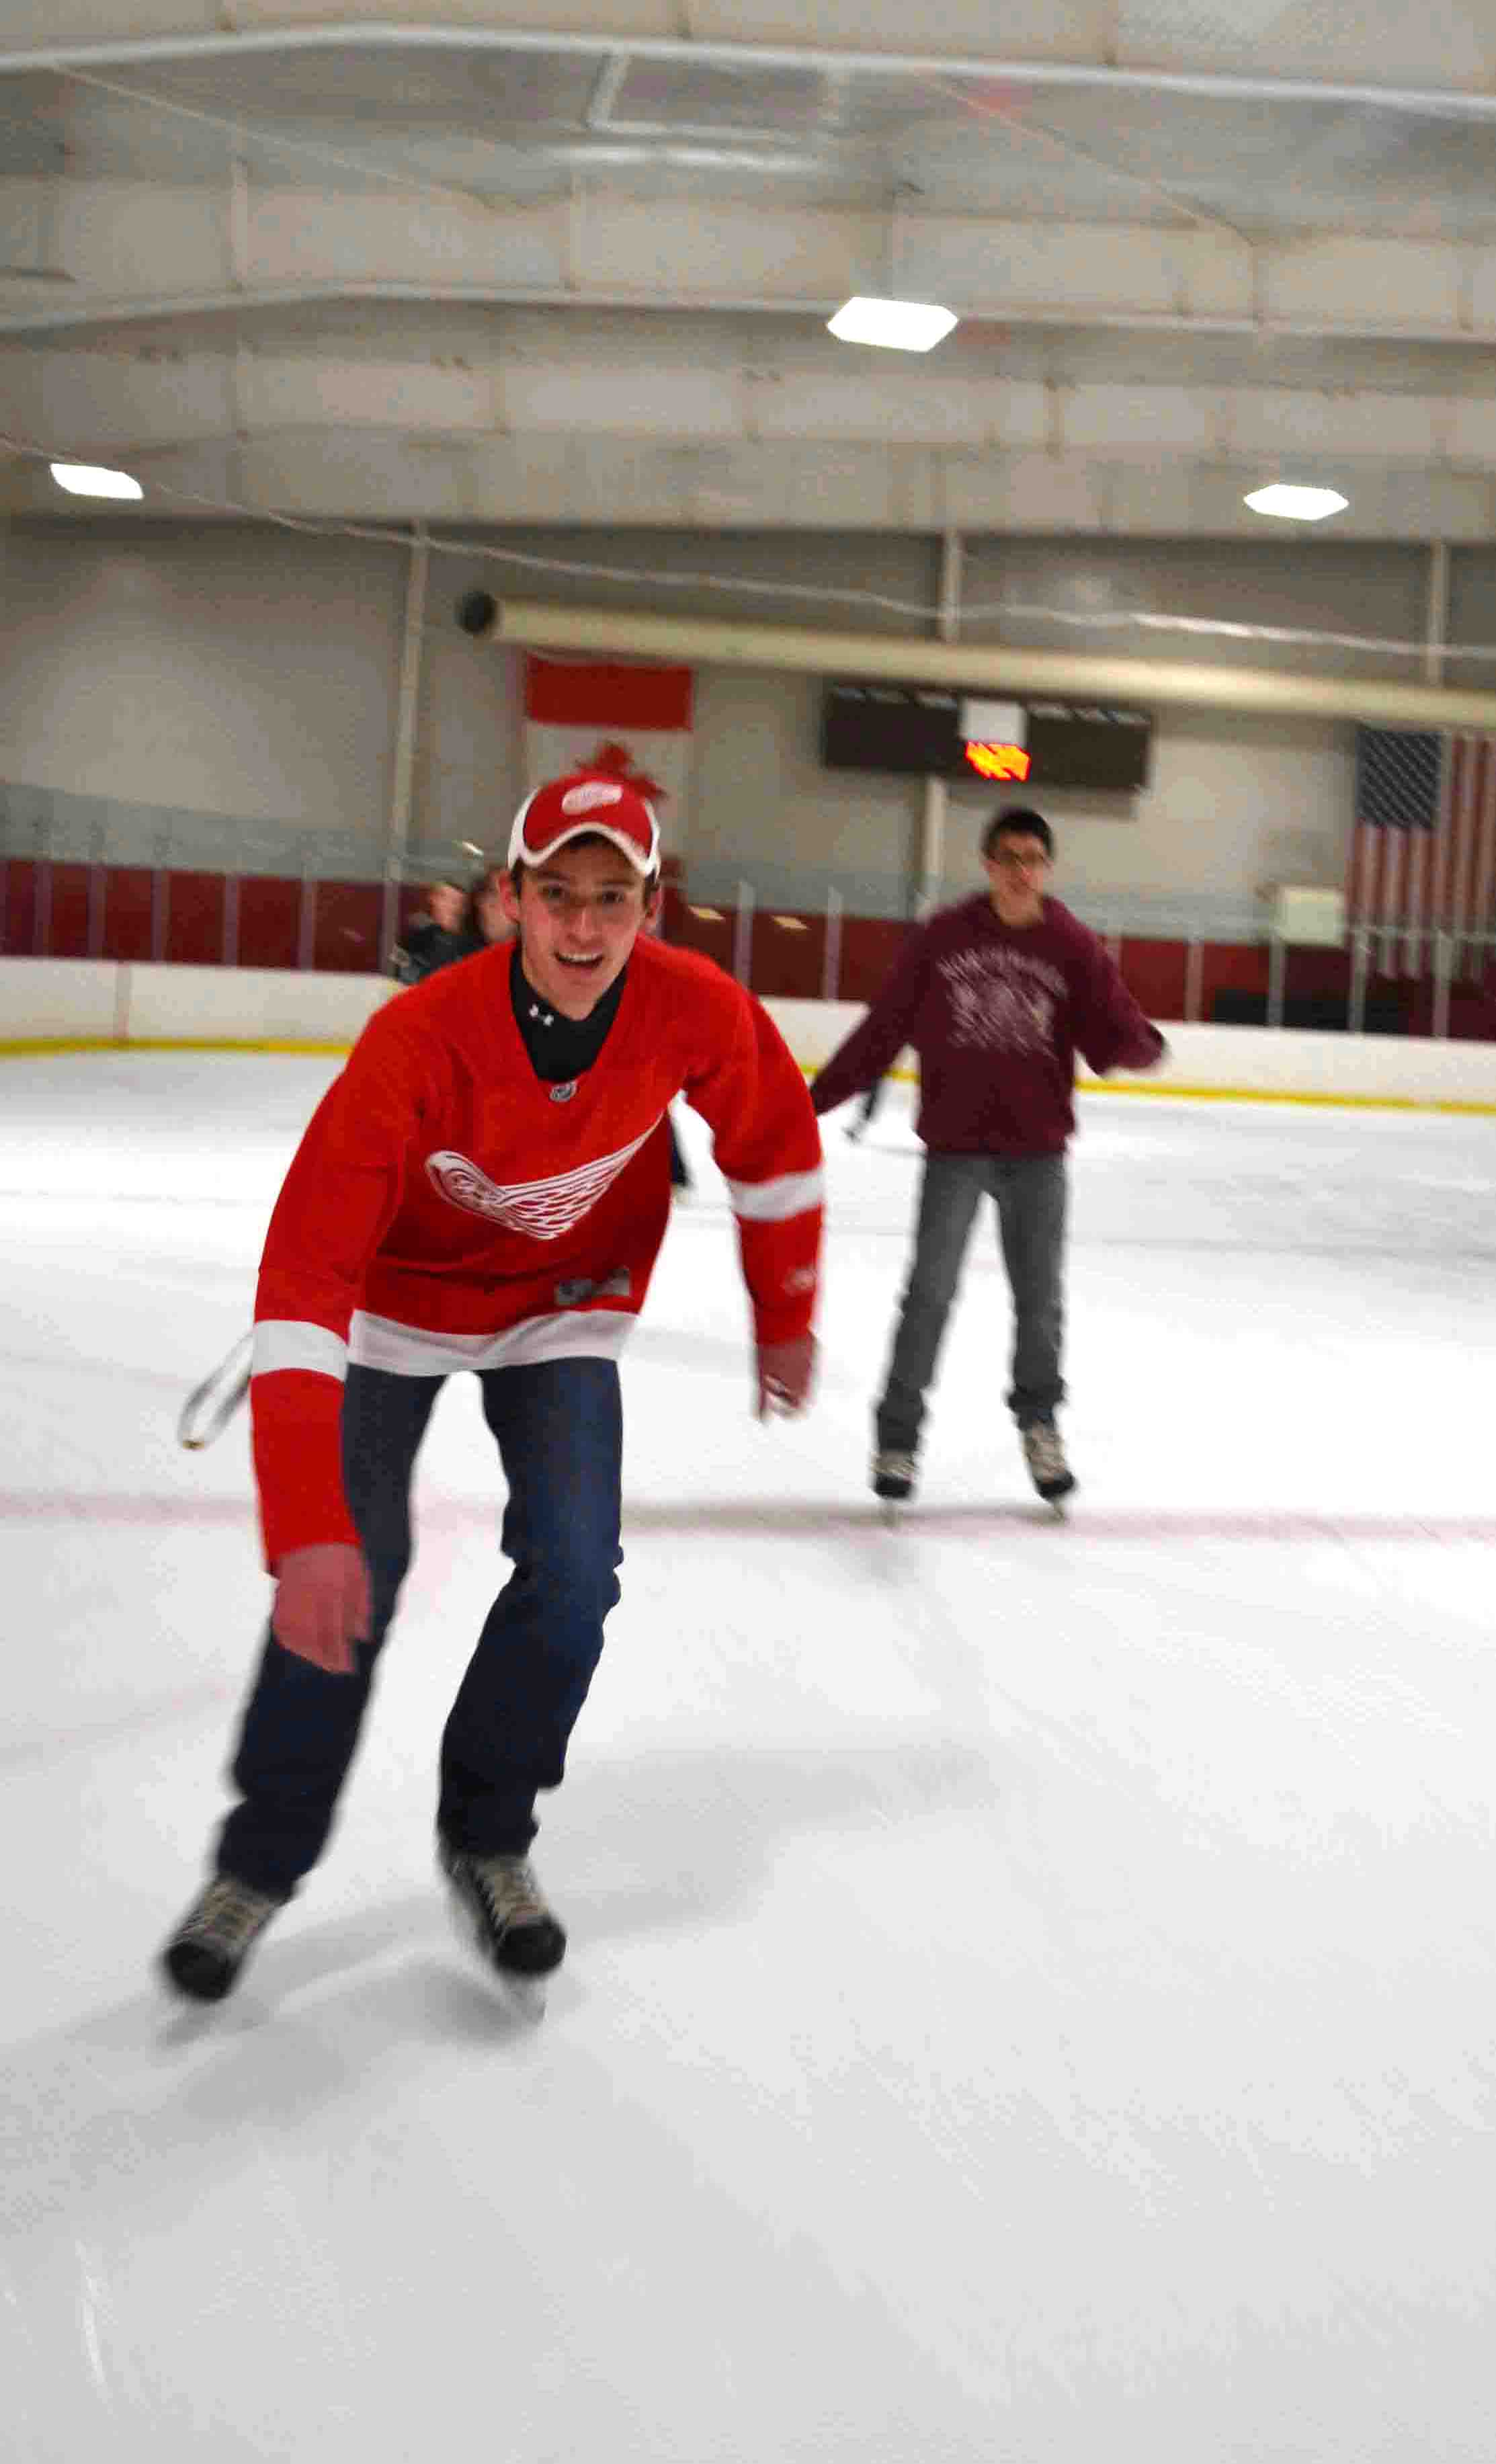 Brett Slayton flies past center ice while Gerrit Householder glides behind.